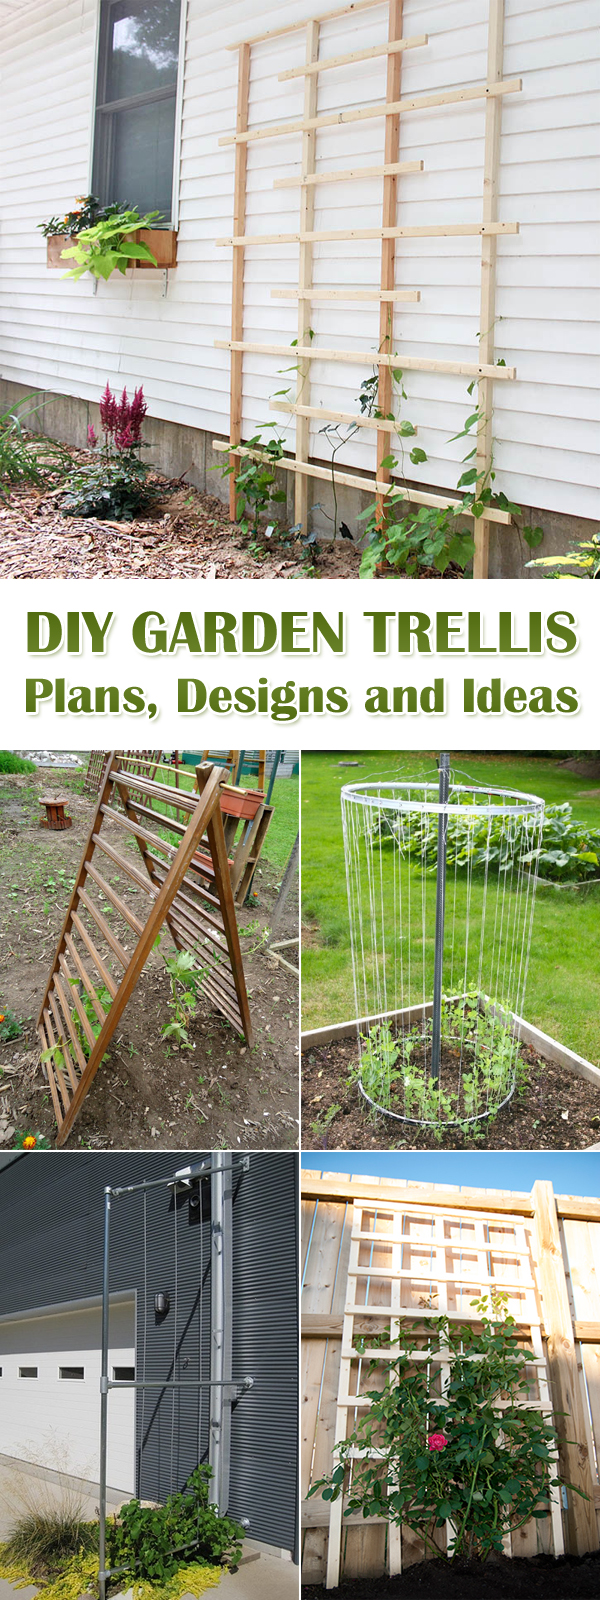 12 DIY Garden Trellis Plans, Designs and Ideas